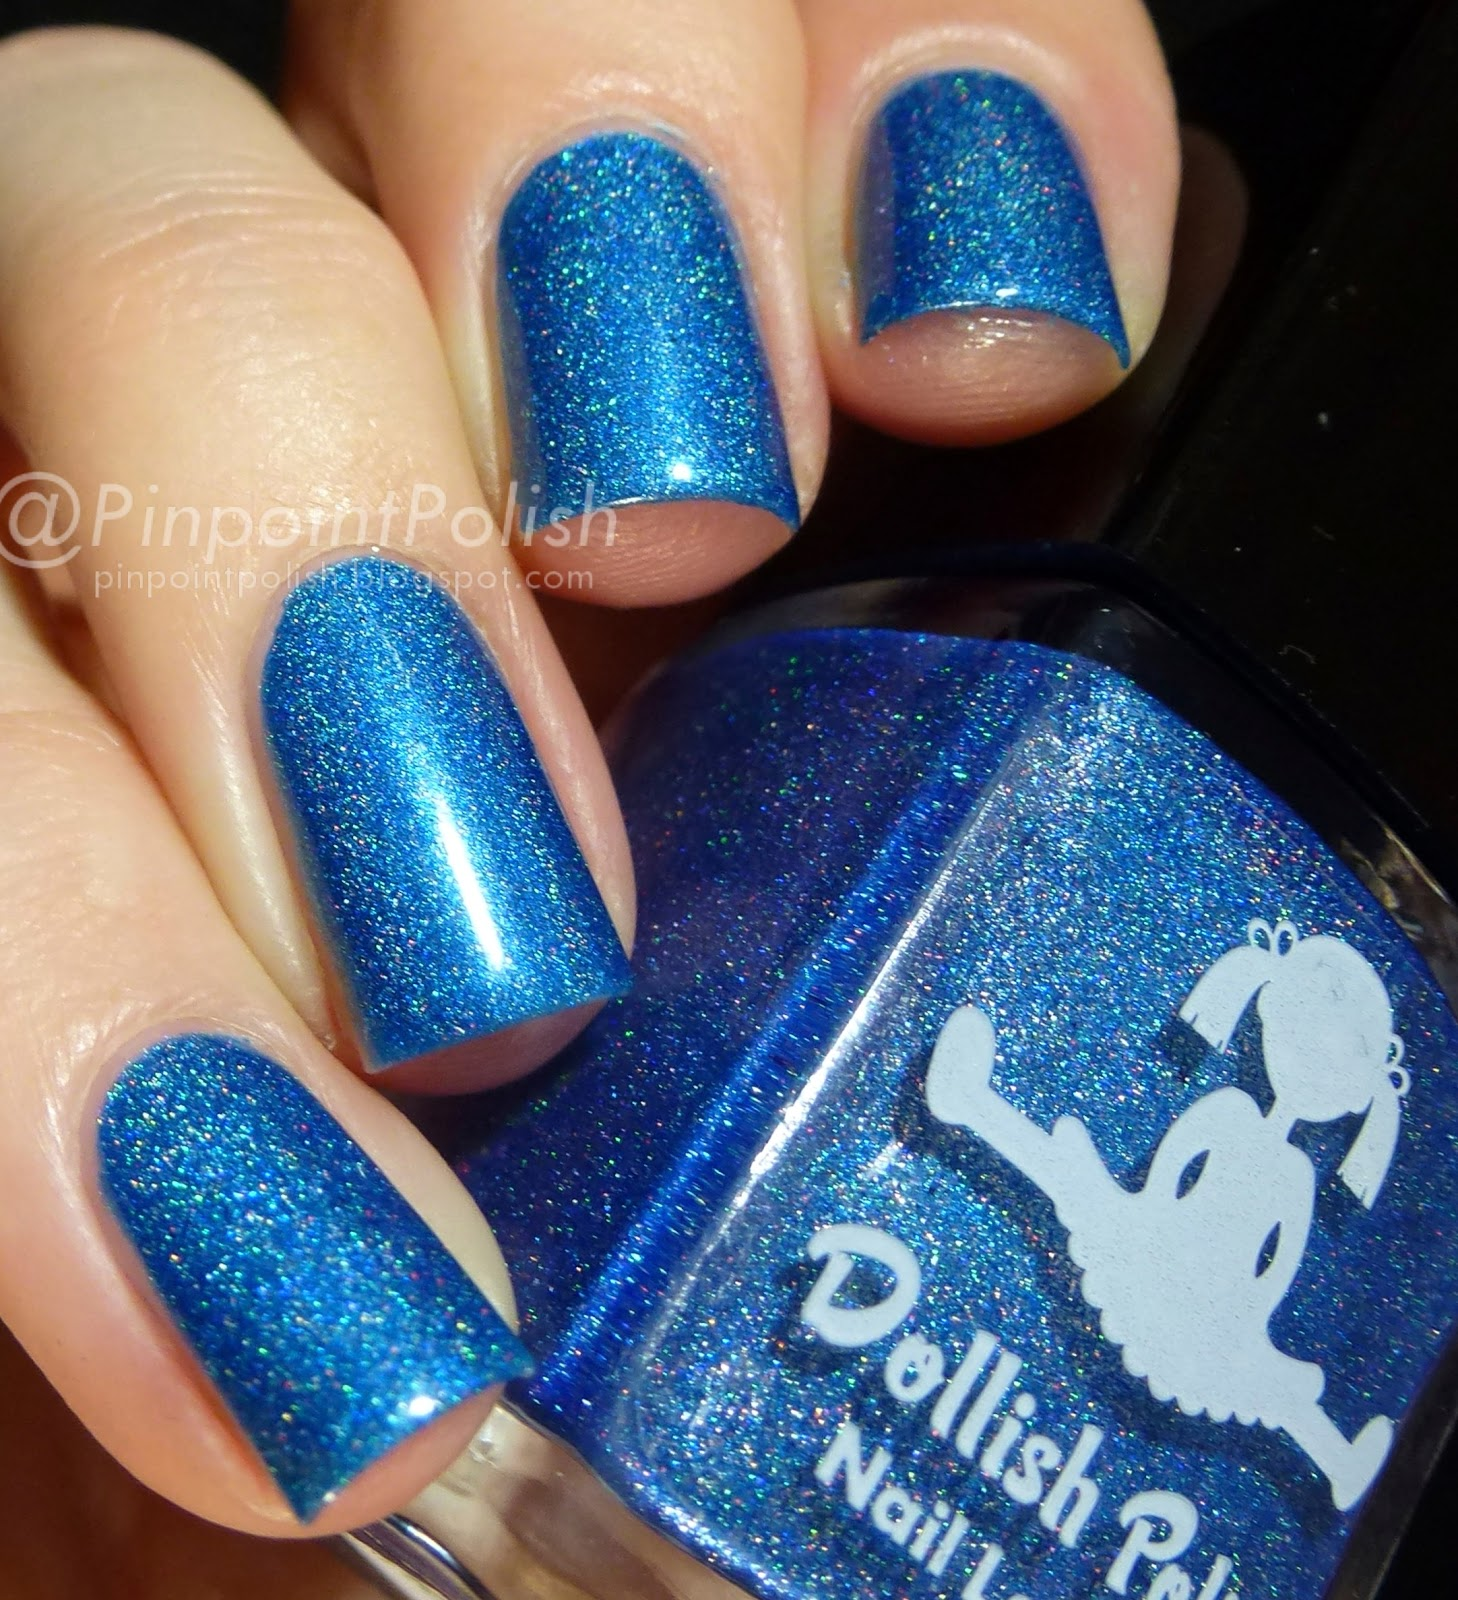 The Angels Have The Phone Box, Dollish Polish, Ultimate Fandom collection, swatch